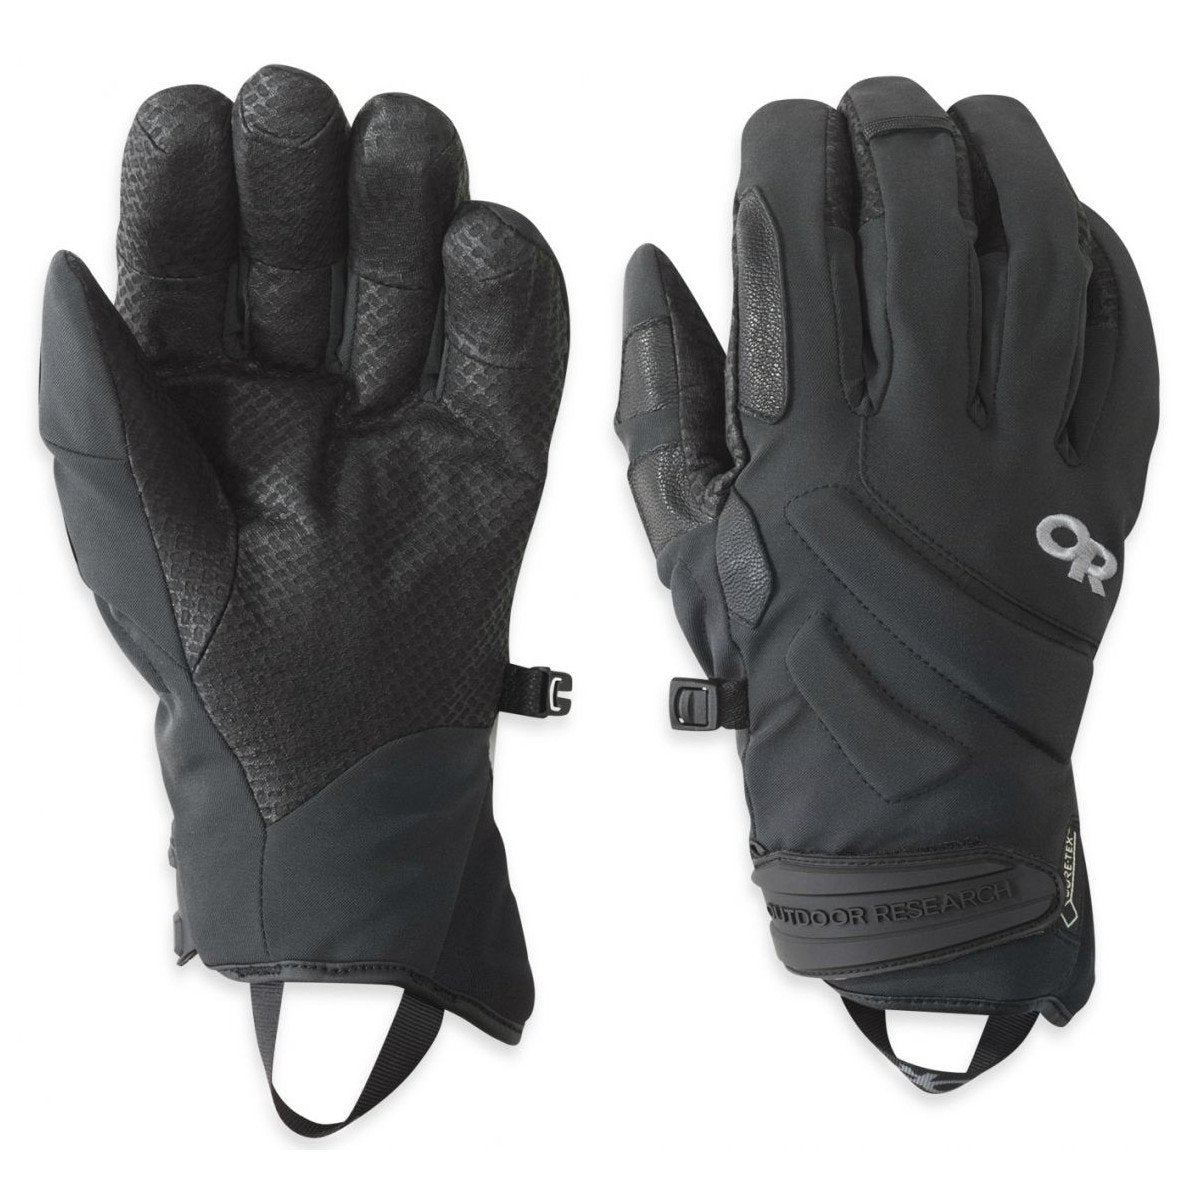 Pair of Outdoor Research Project Gloves in Black, showing front and reverse